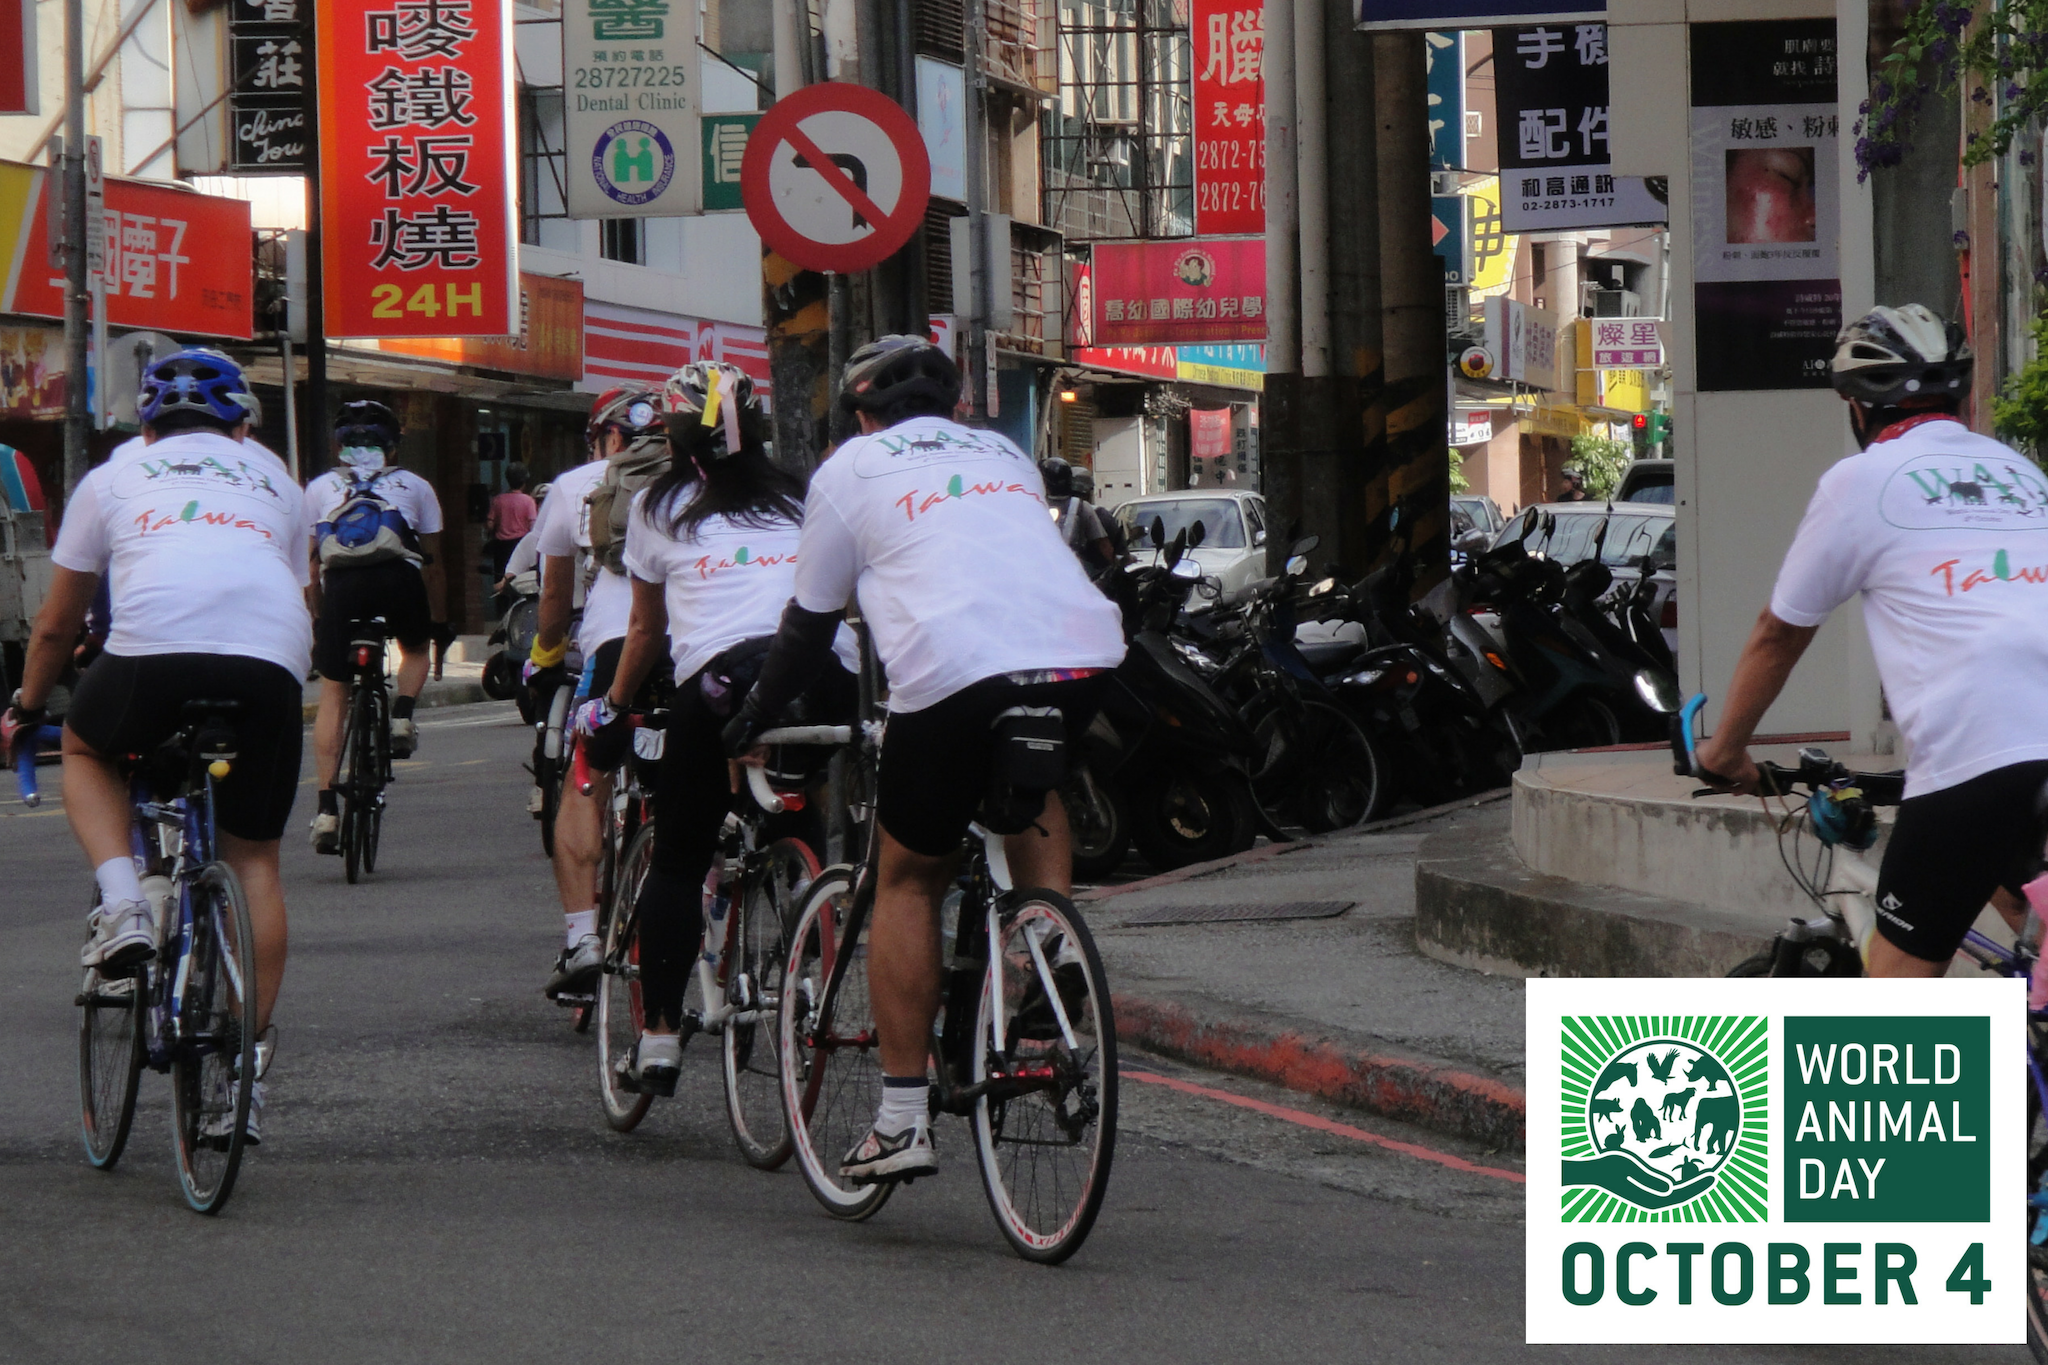 Taiwan - Help-Save-A-Pet Fund (HSAPF) Cycle Tour